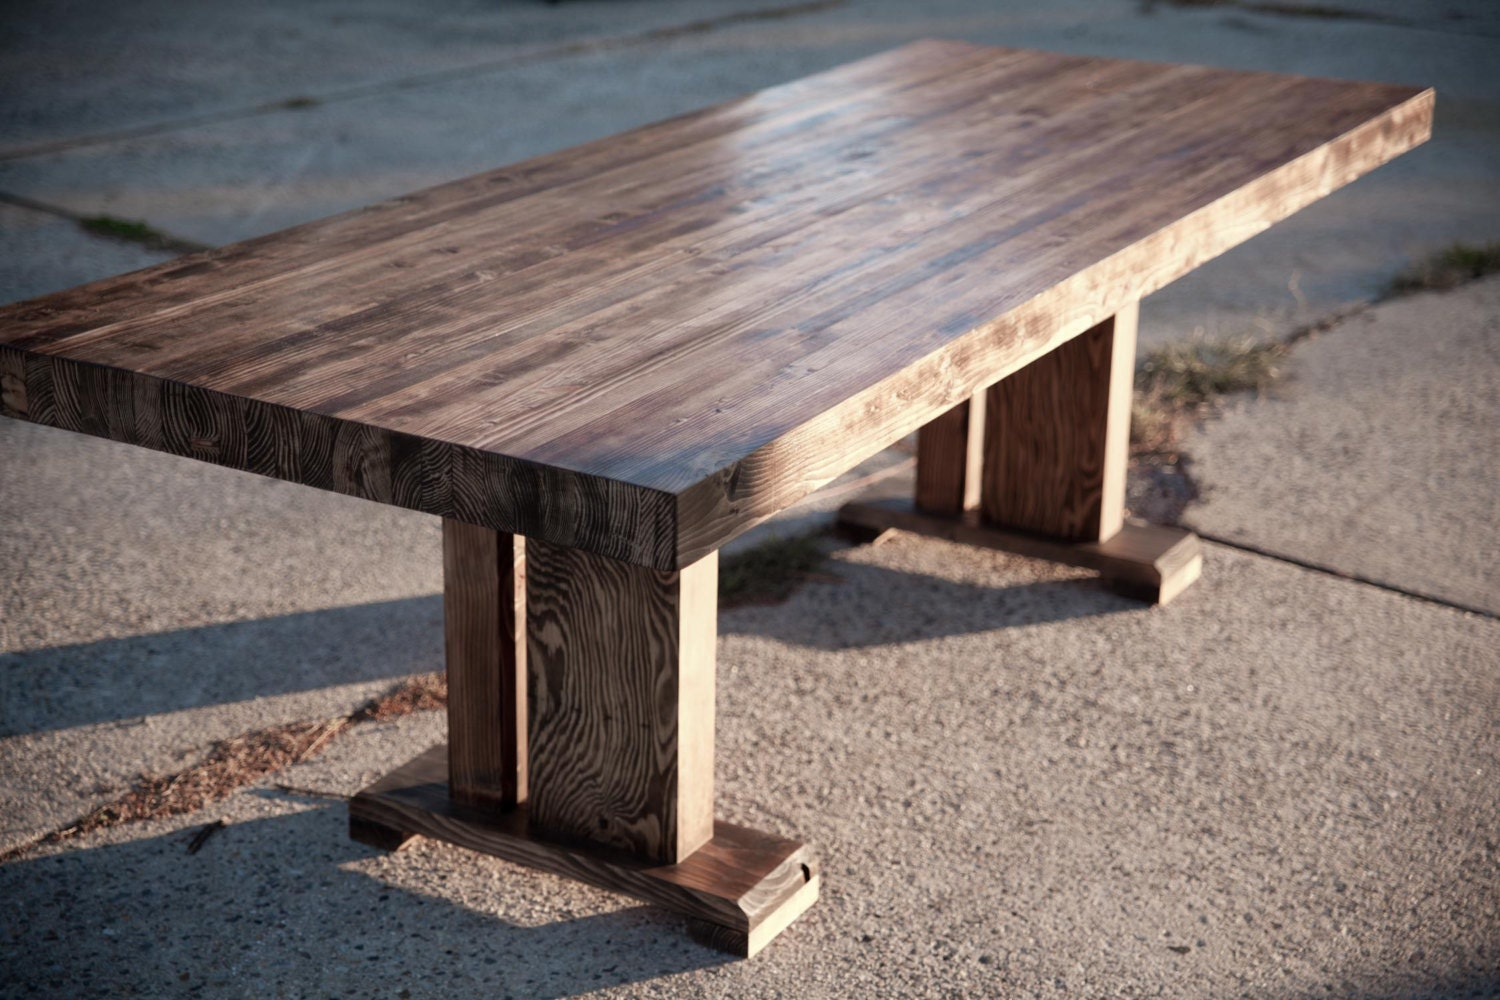 rolling with legs block butcher motivate prepare decorating regarding wood table